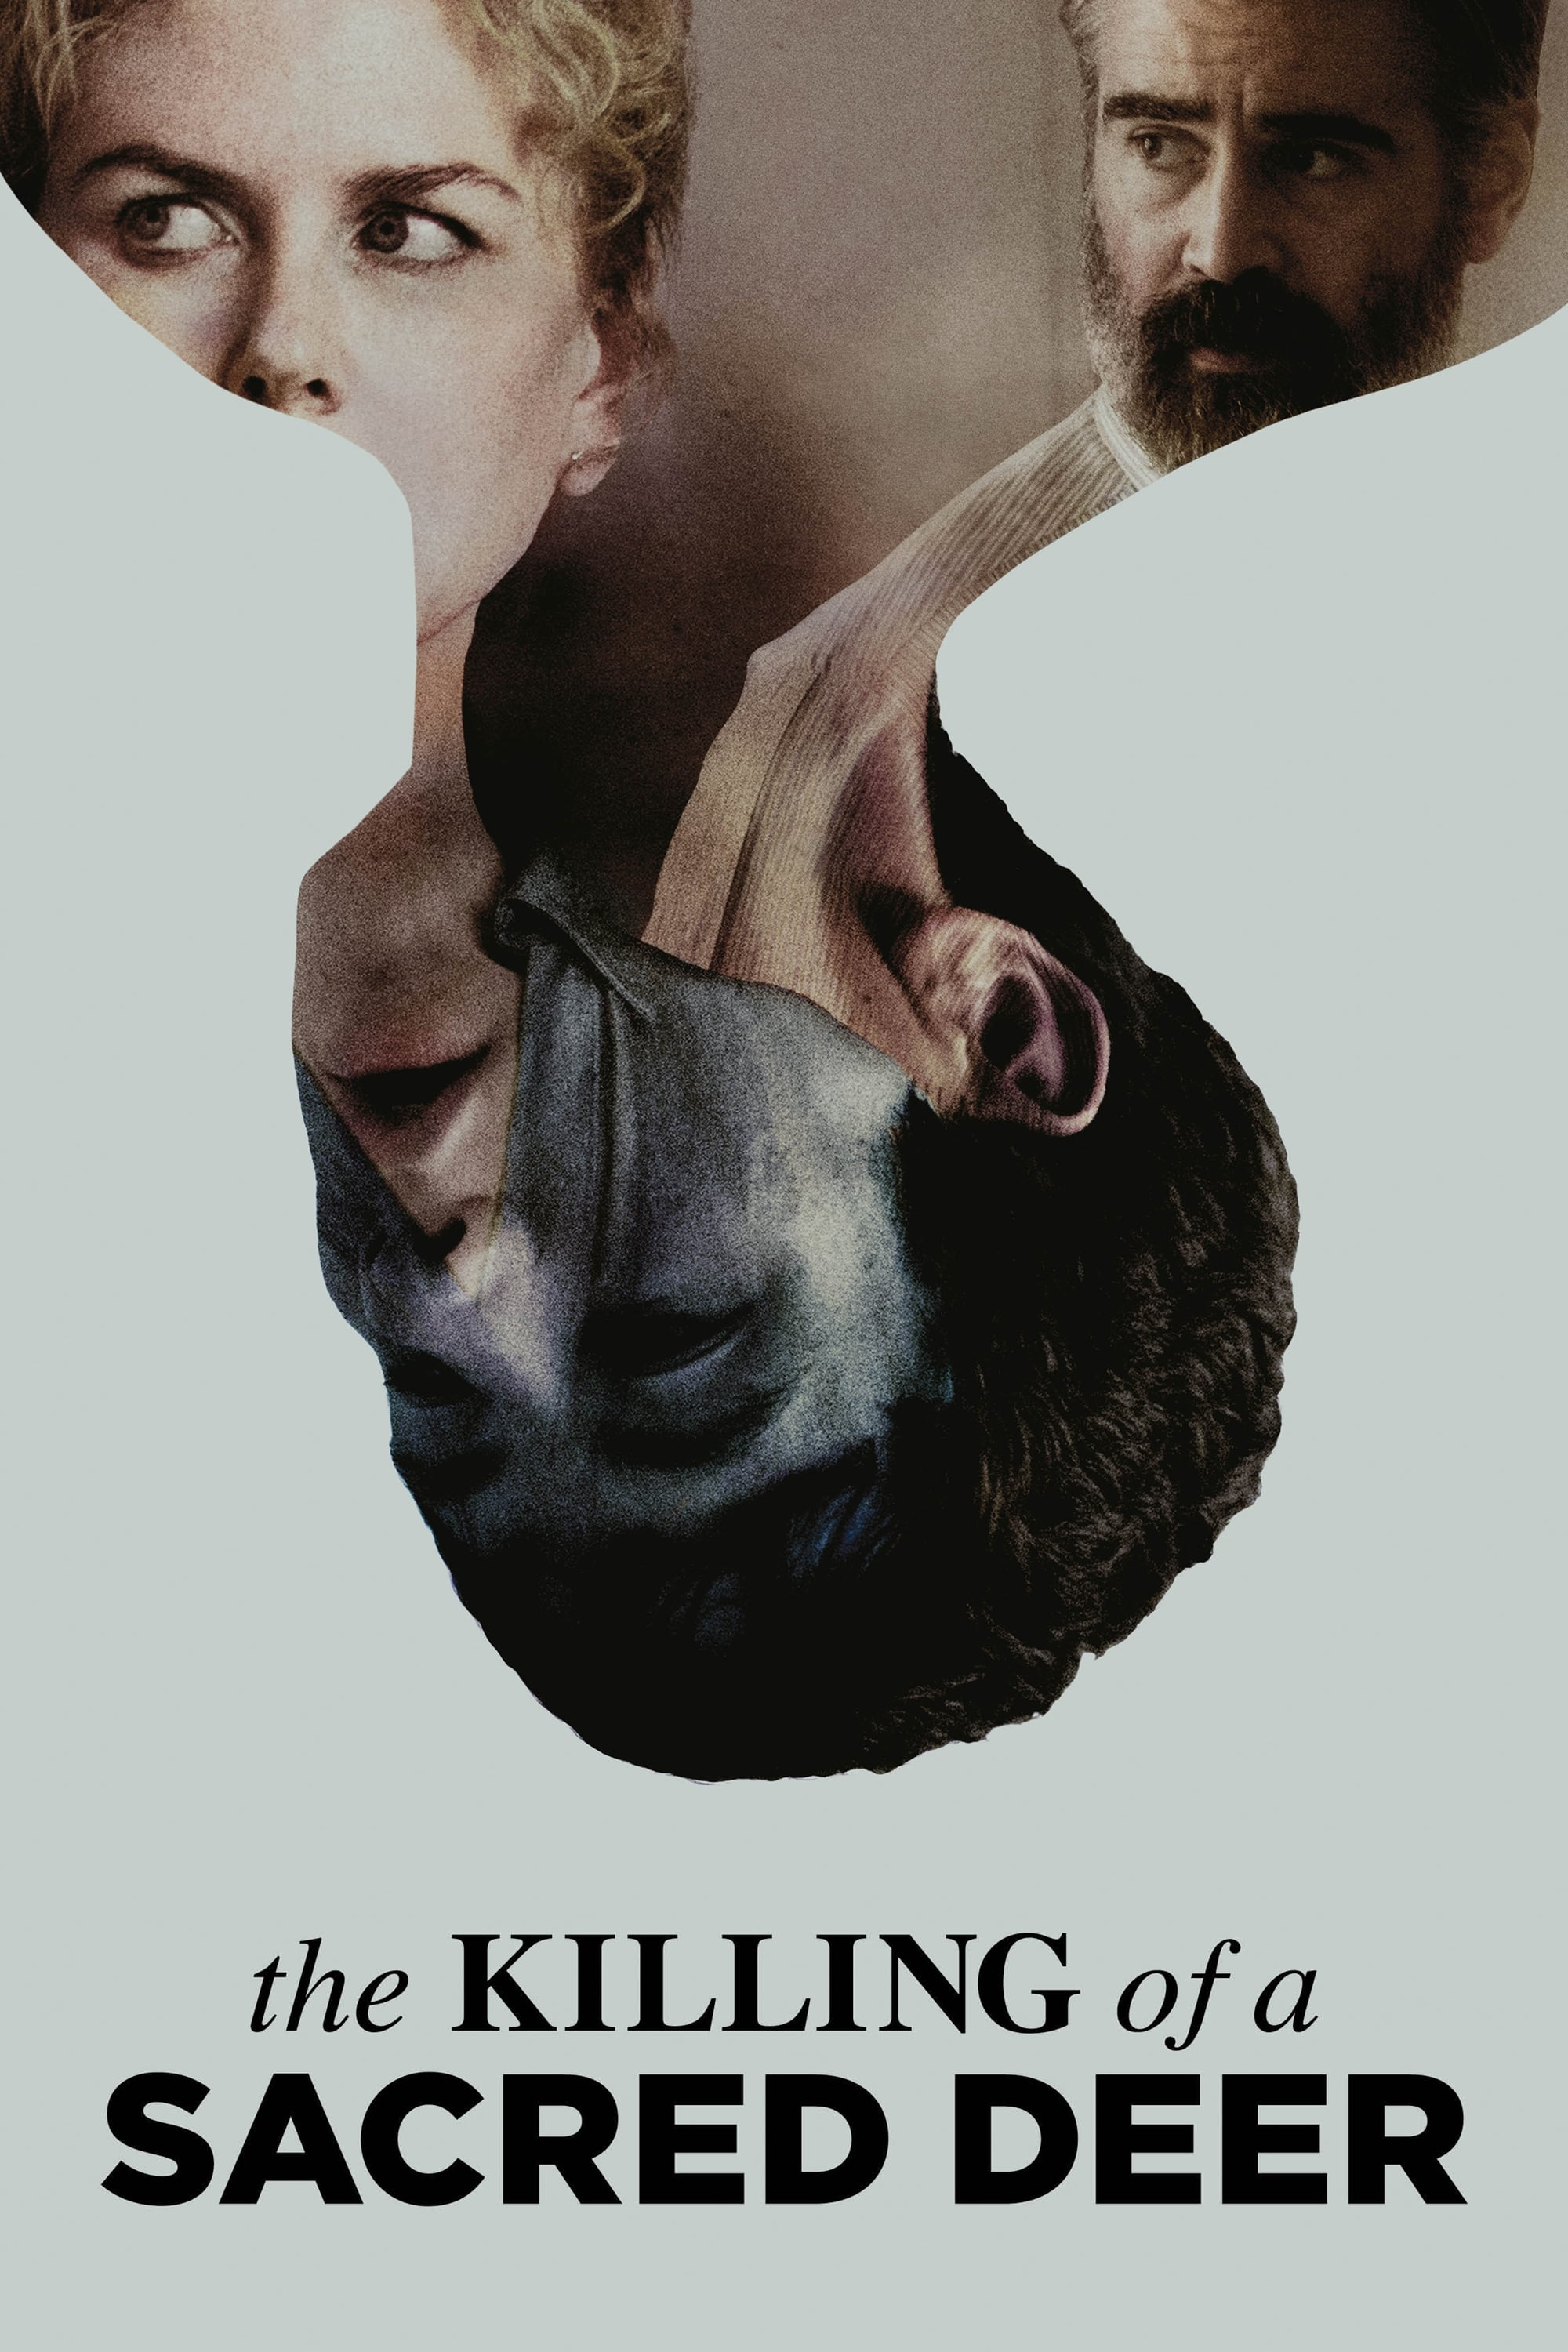 image for The Killing of a Sacred Deer